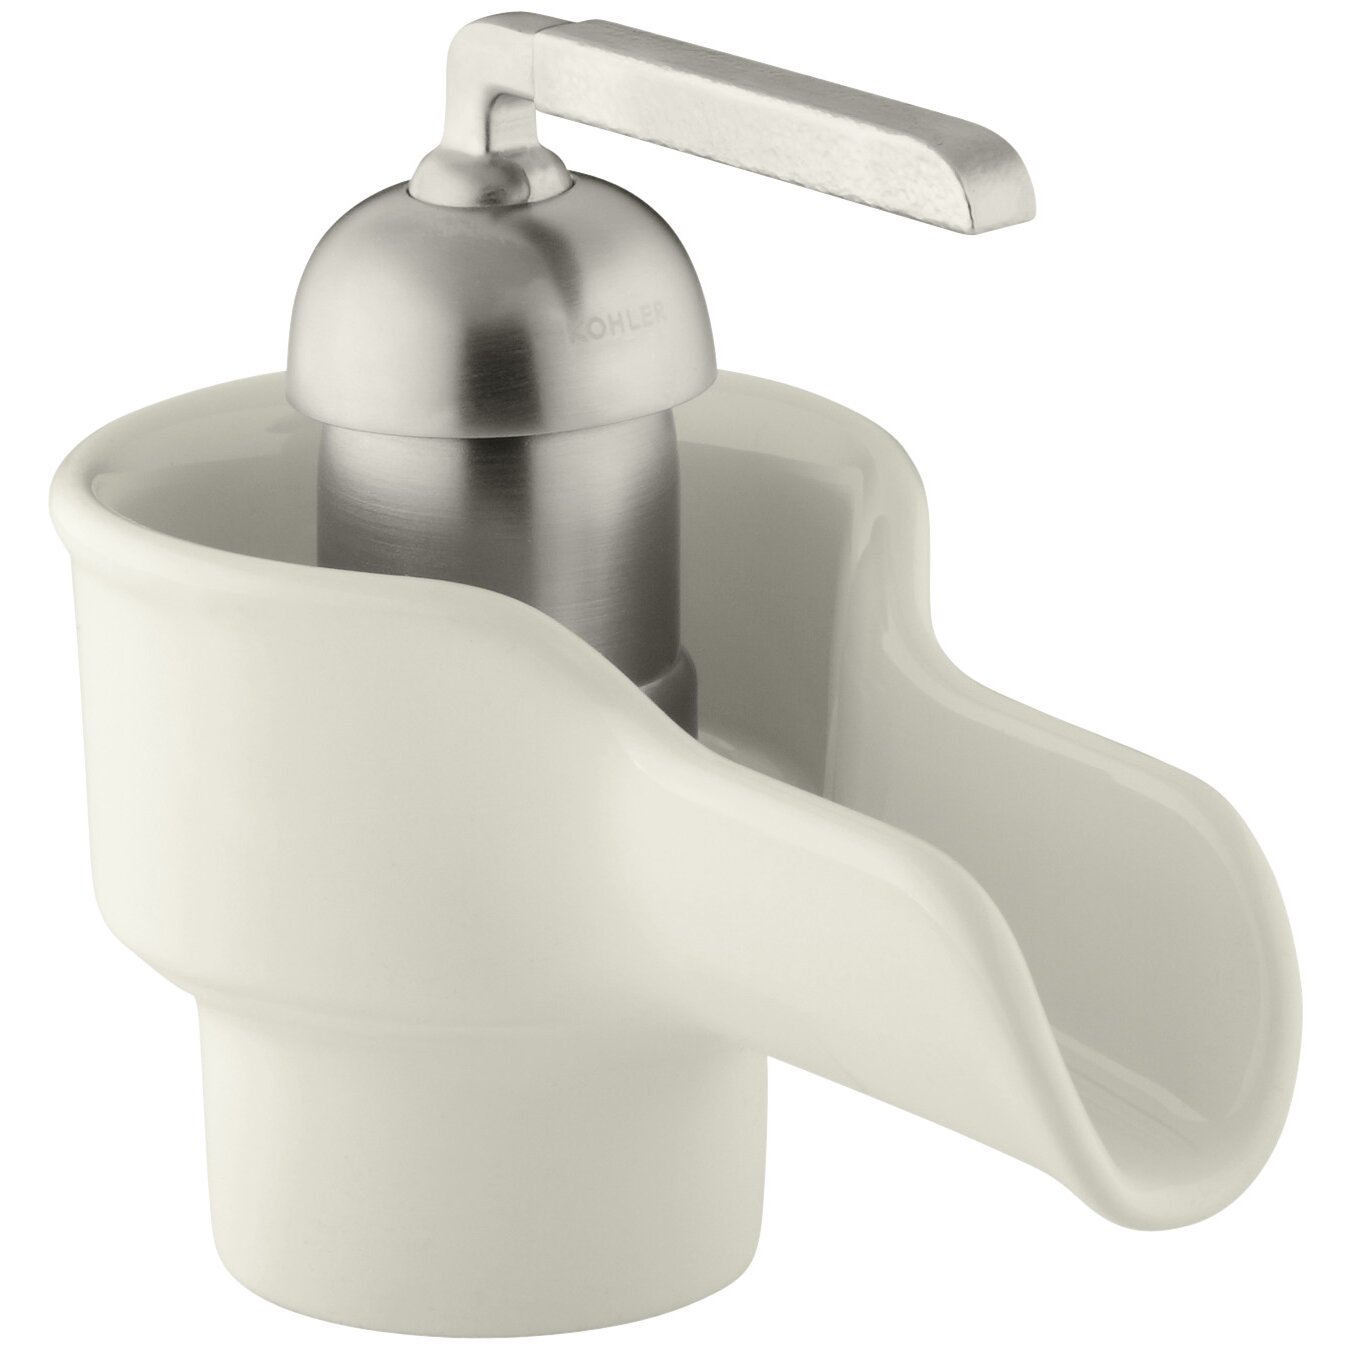 Bol Single Hole Ceramic Bathroom Sink Faucet Wayfair